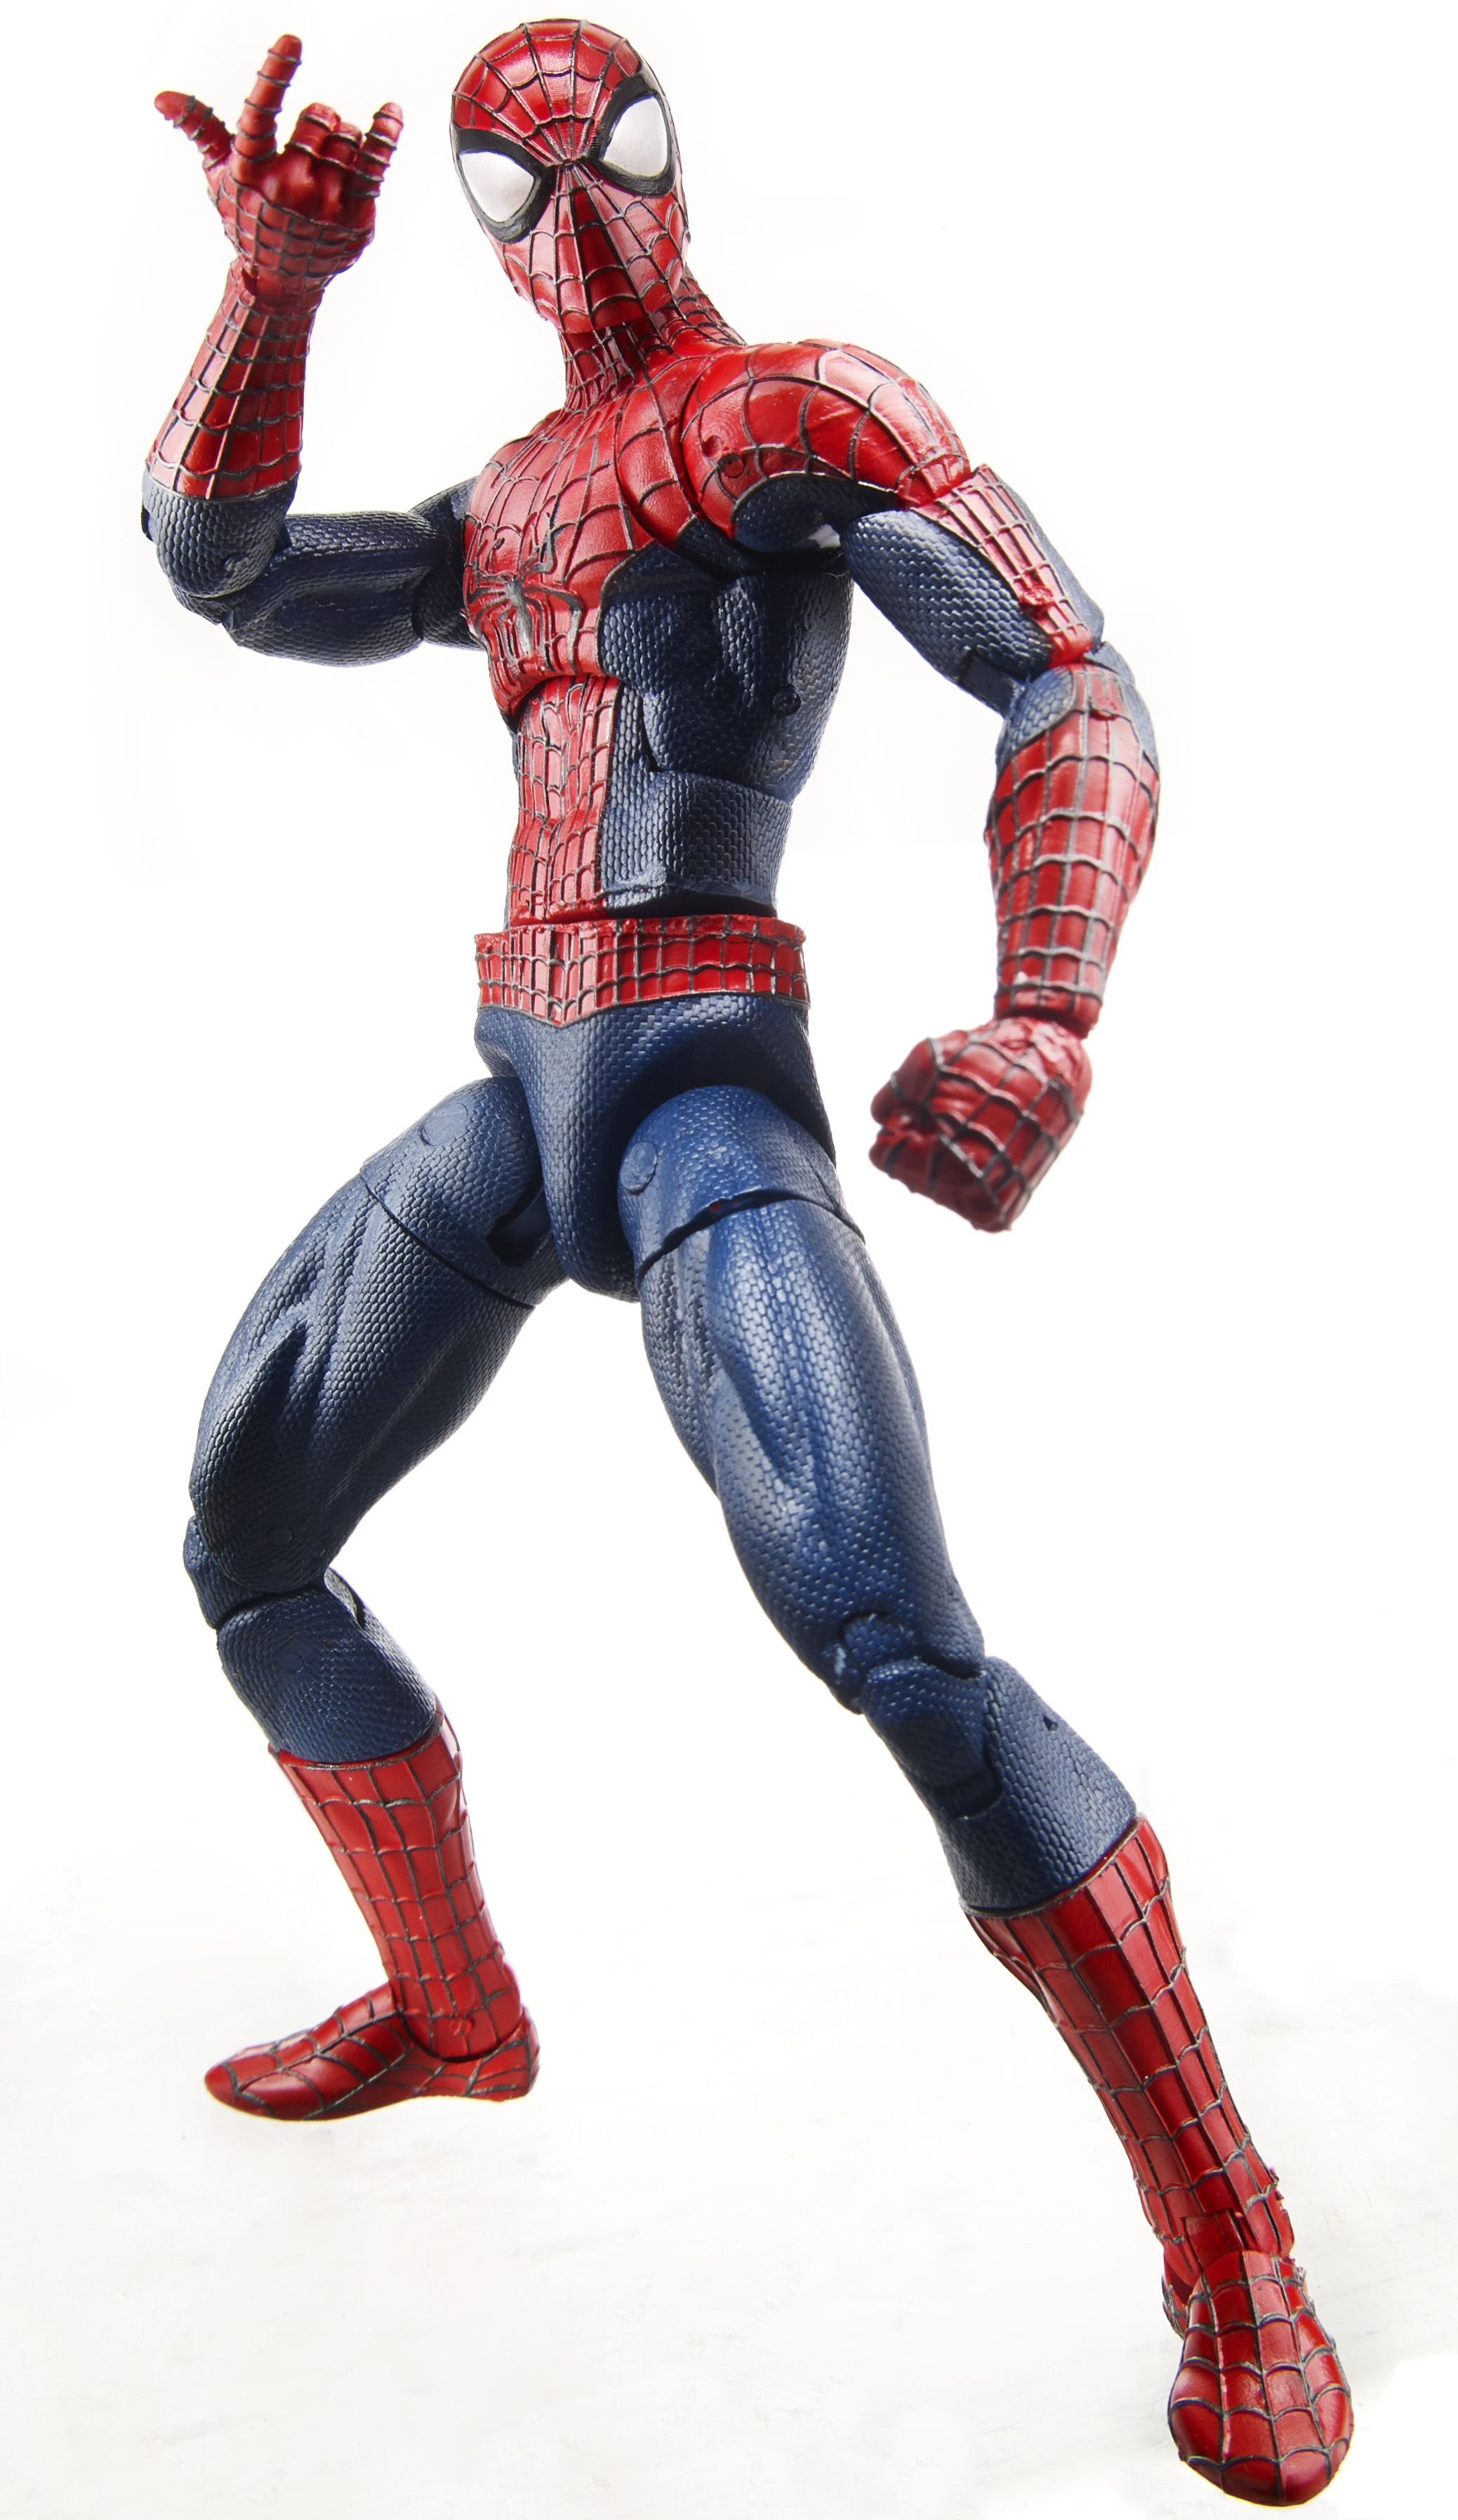 Man spider action figure